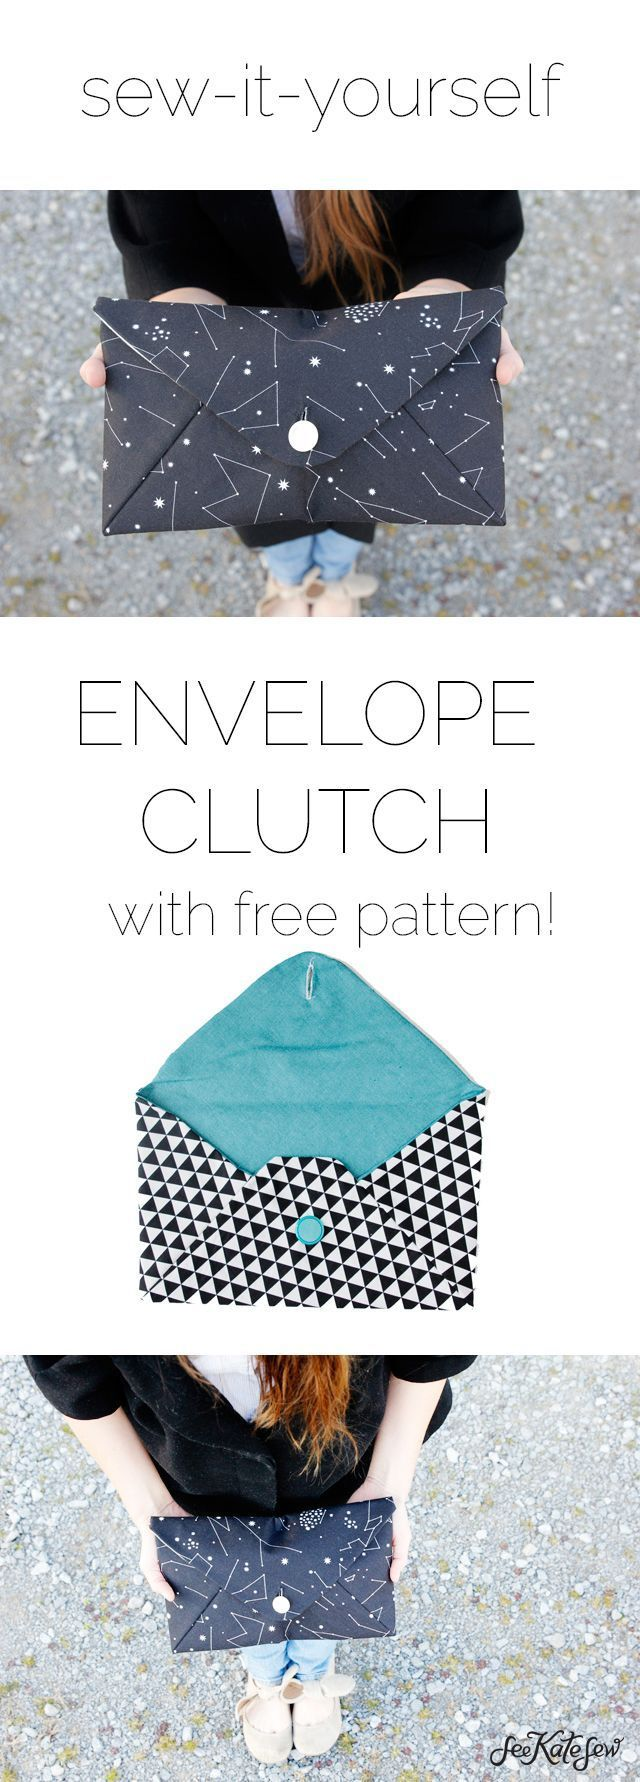 Envelope clutch ~ free pattern + tutorial